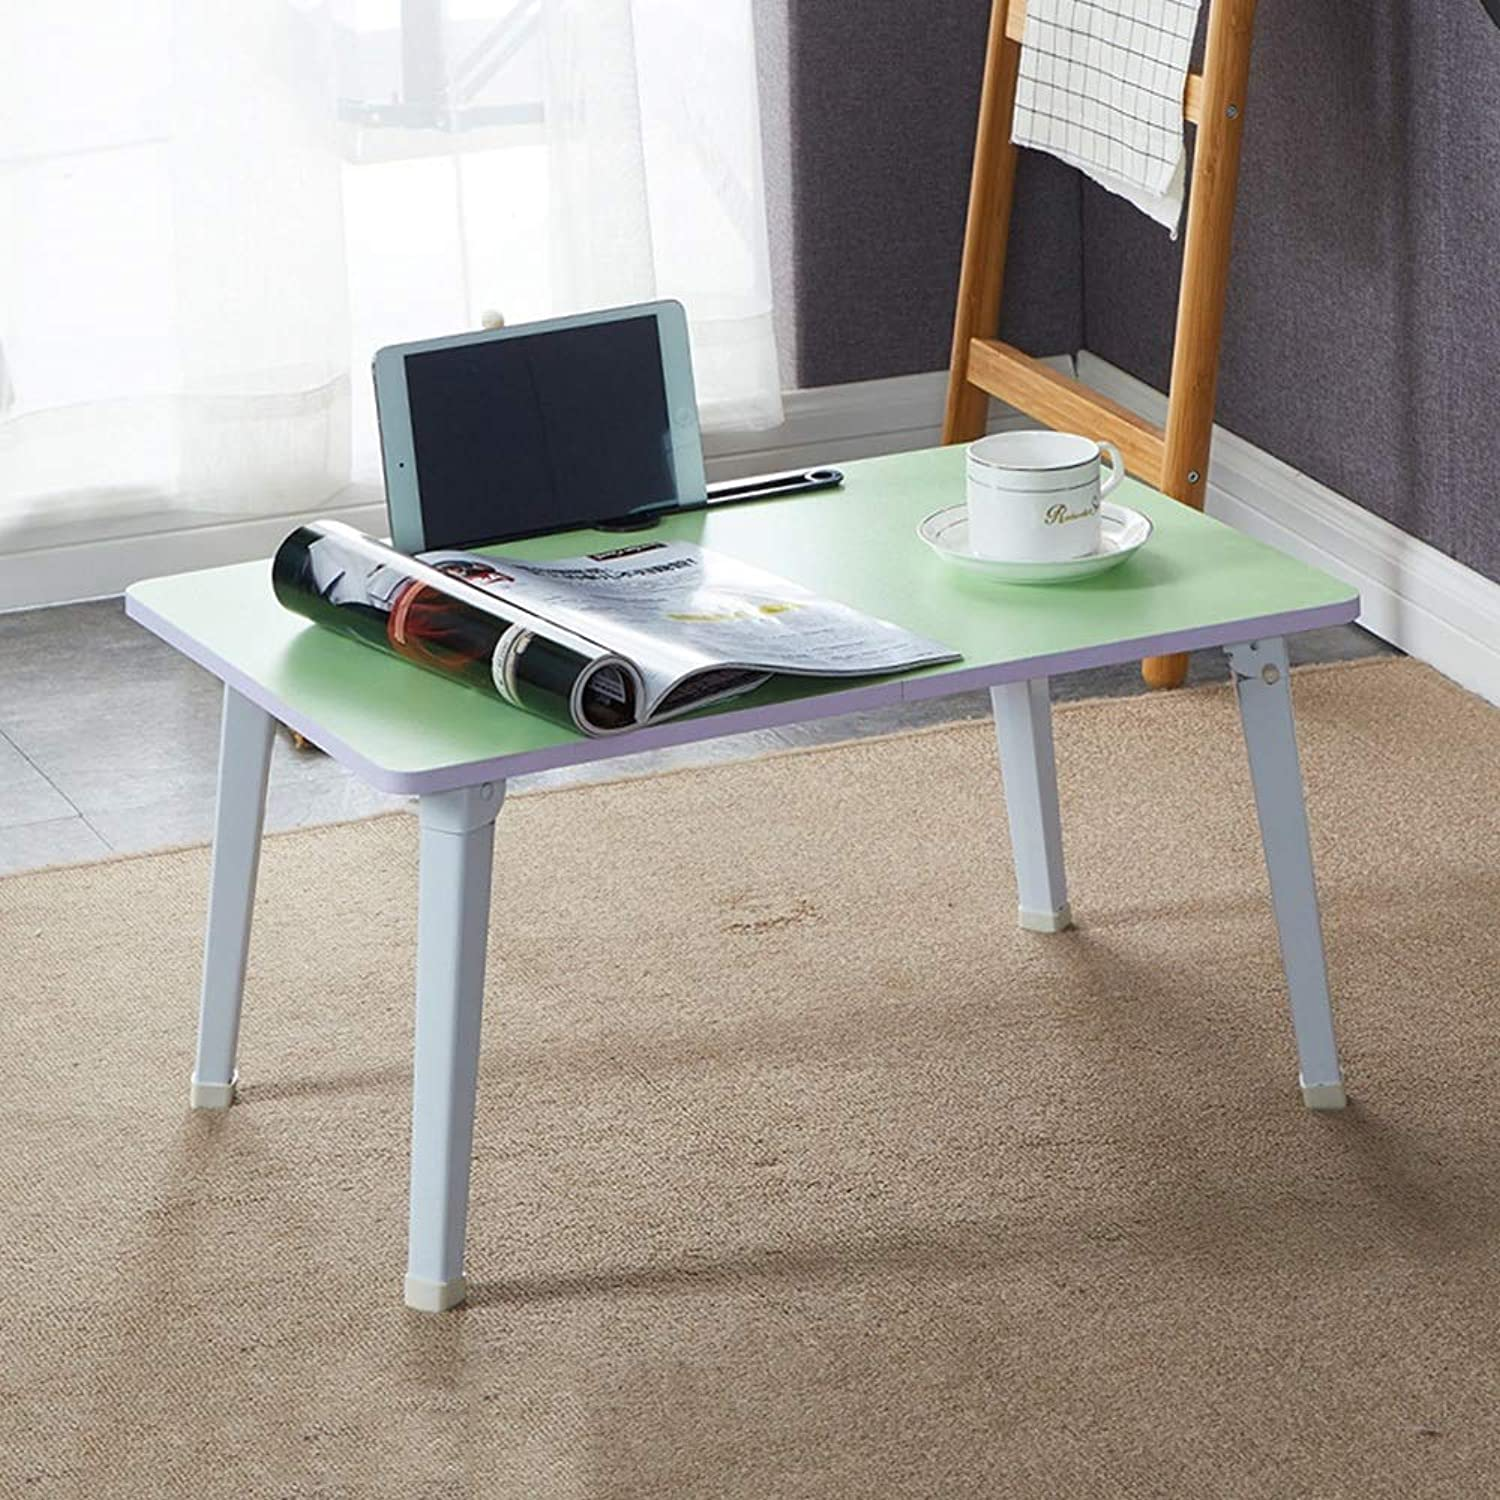 Xiaolin Folding Table Dining Table Office Desk Bed Computer Desk Laptop Table Lounger Study Table Book Table (color   Green)